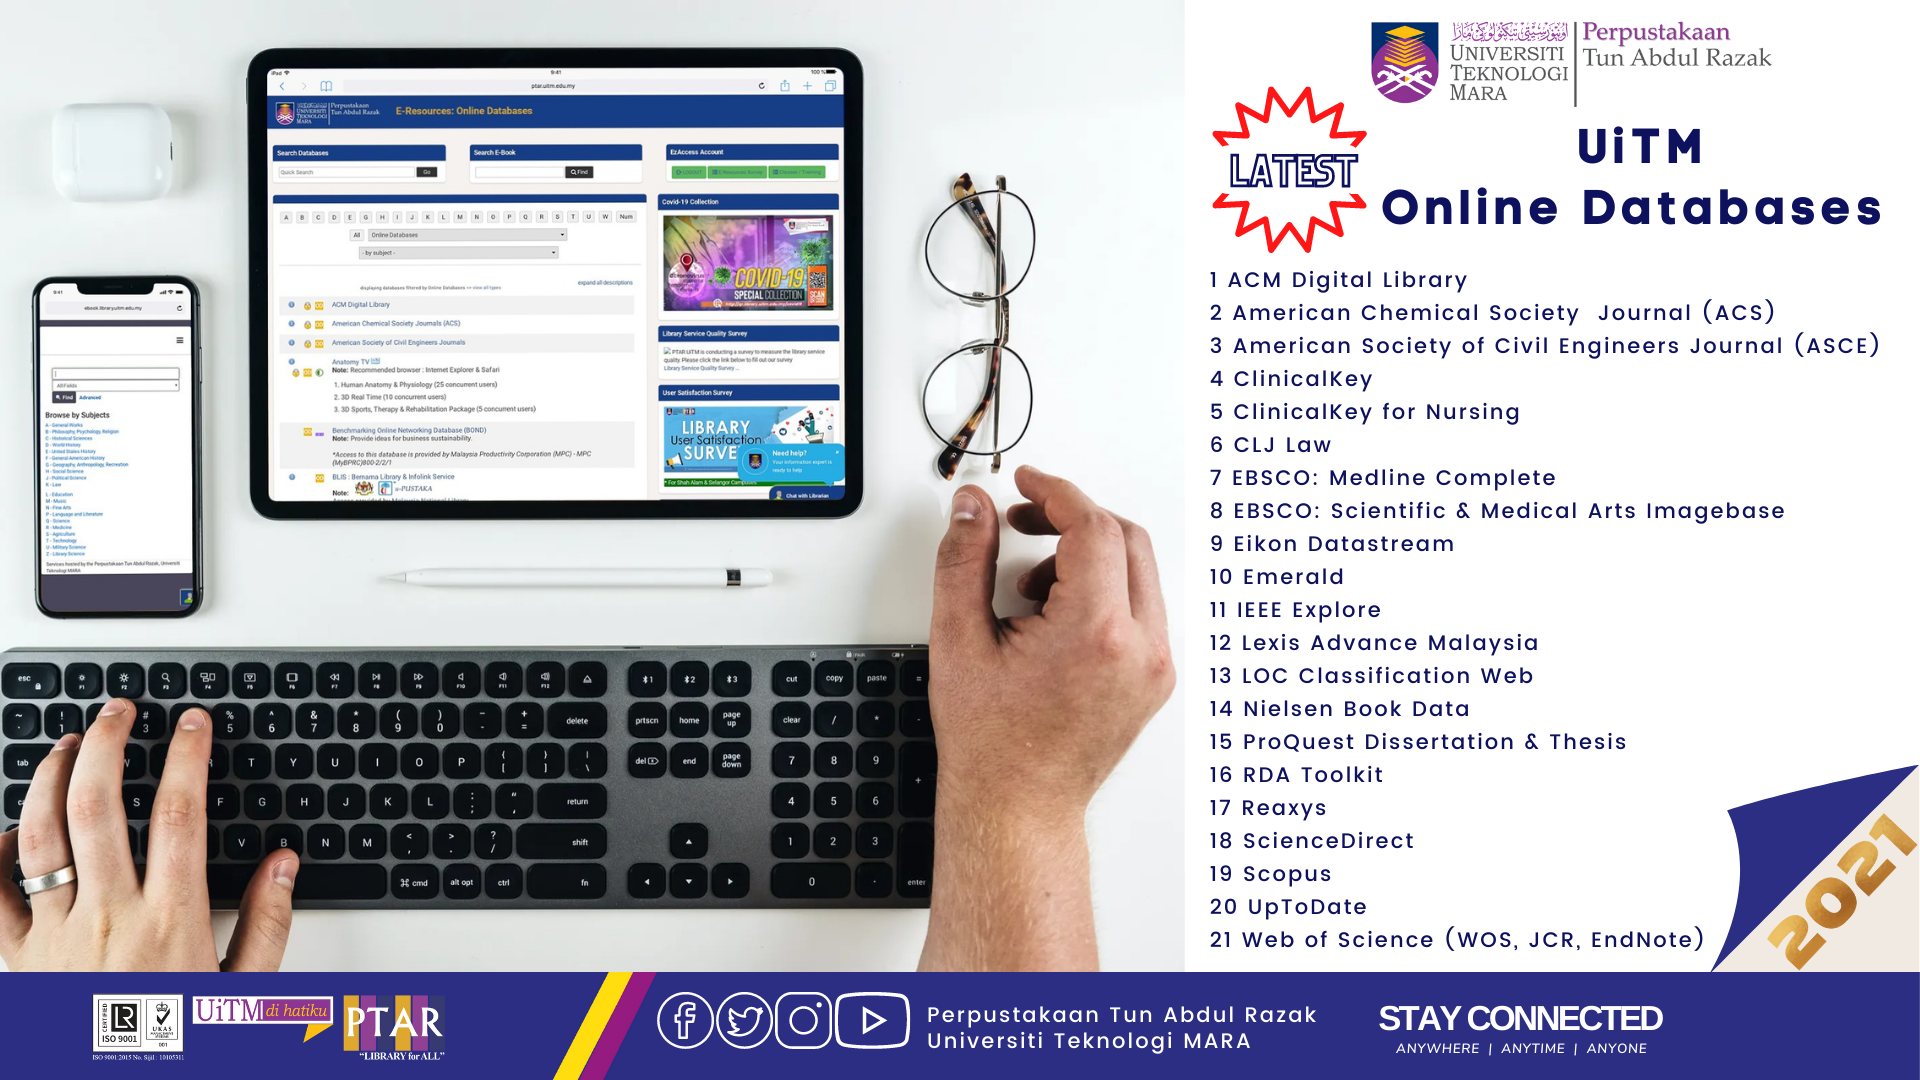 STAY CONNECTED: Latest UiTM Online Databases 2021